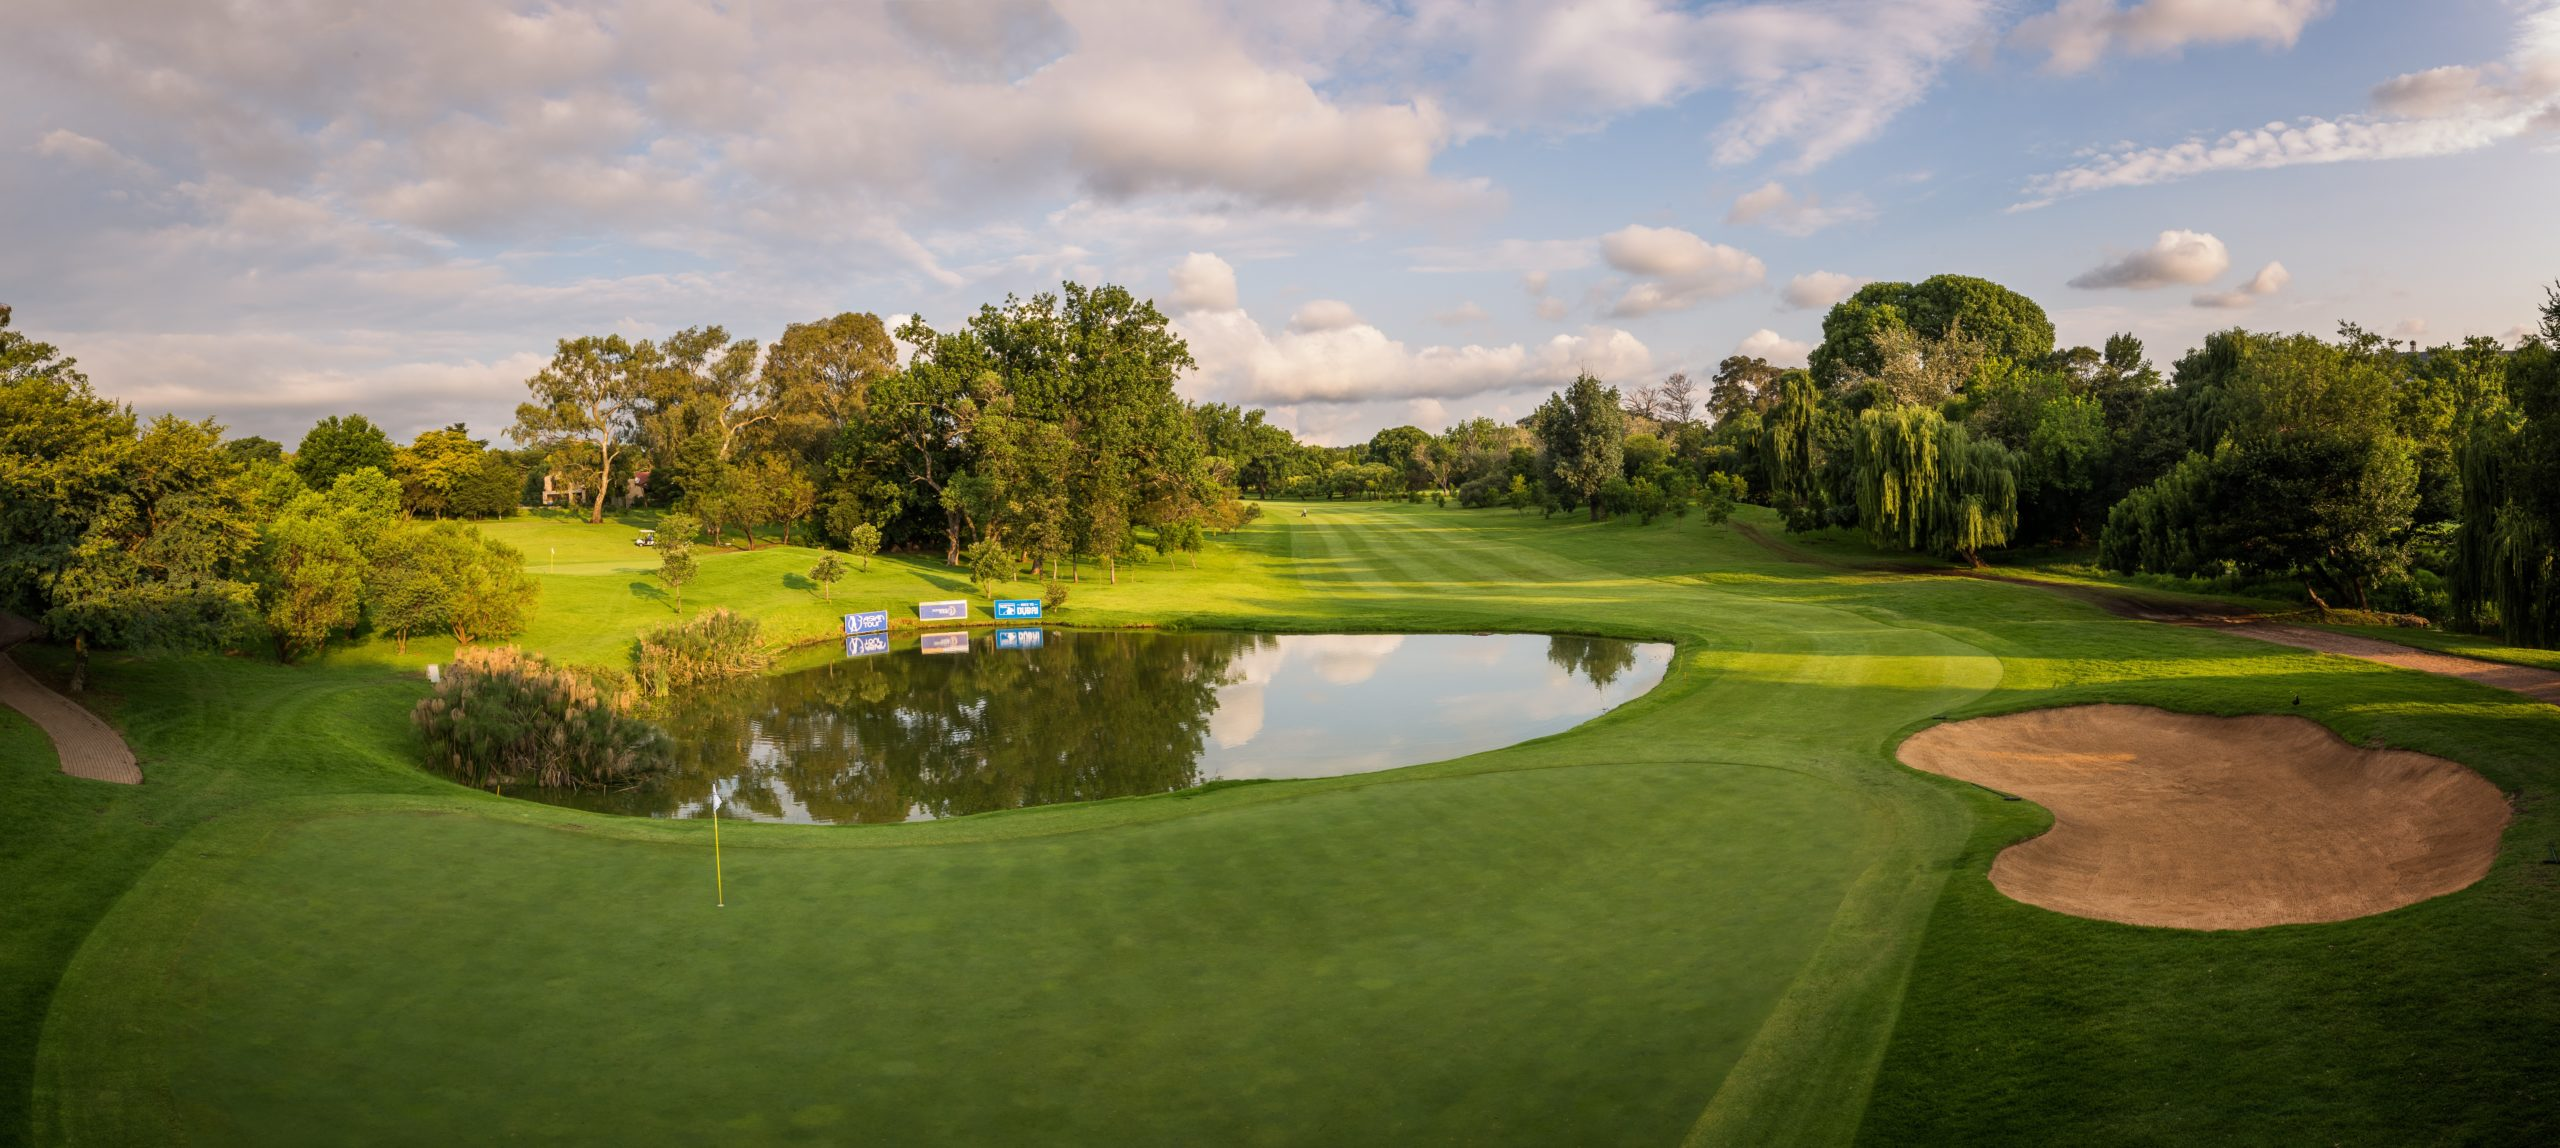 No par-5s for the pros in SA Open